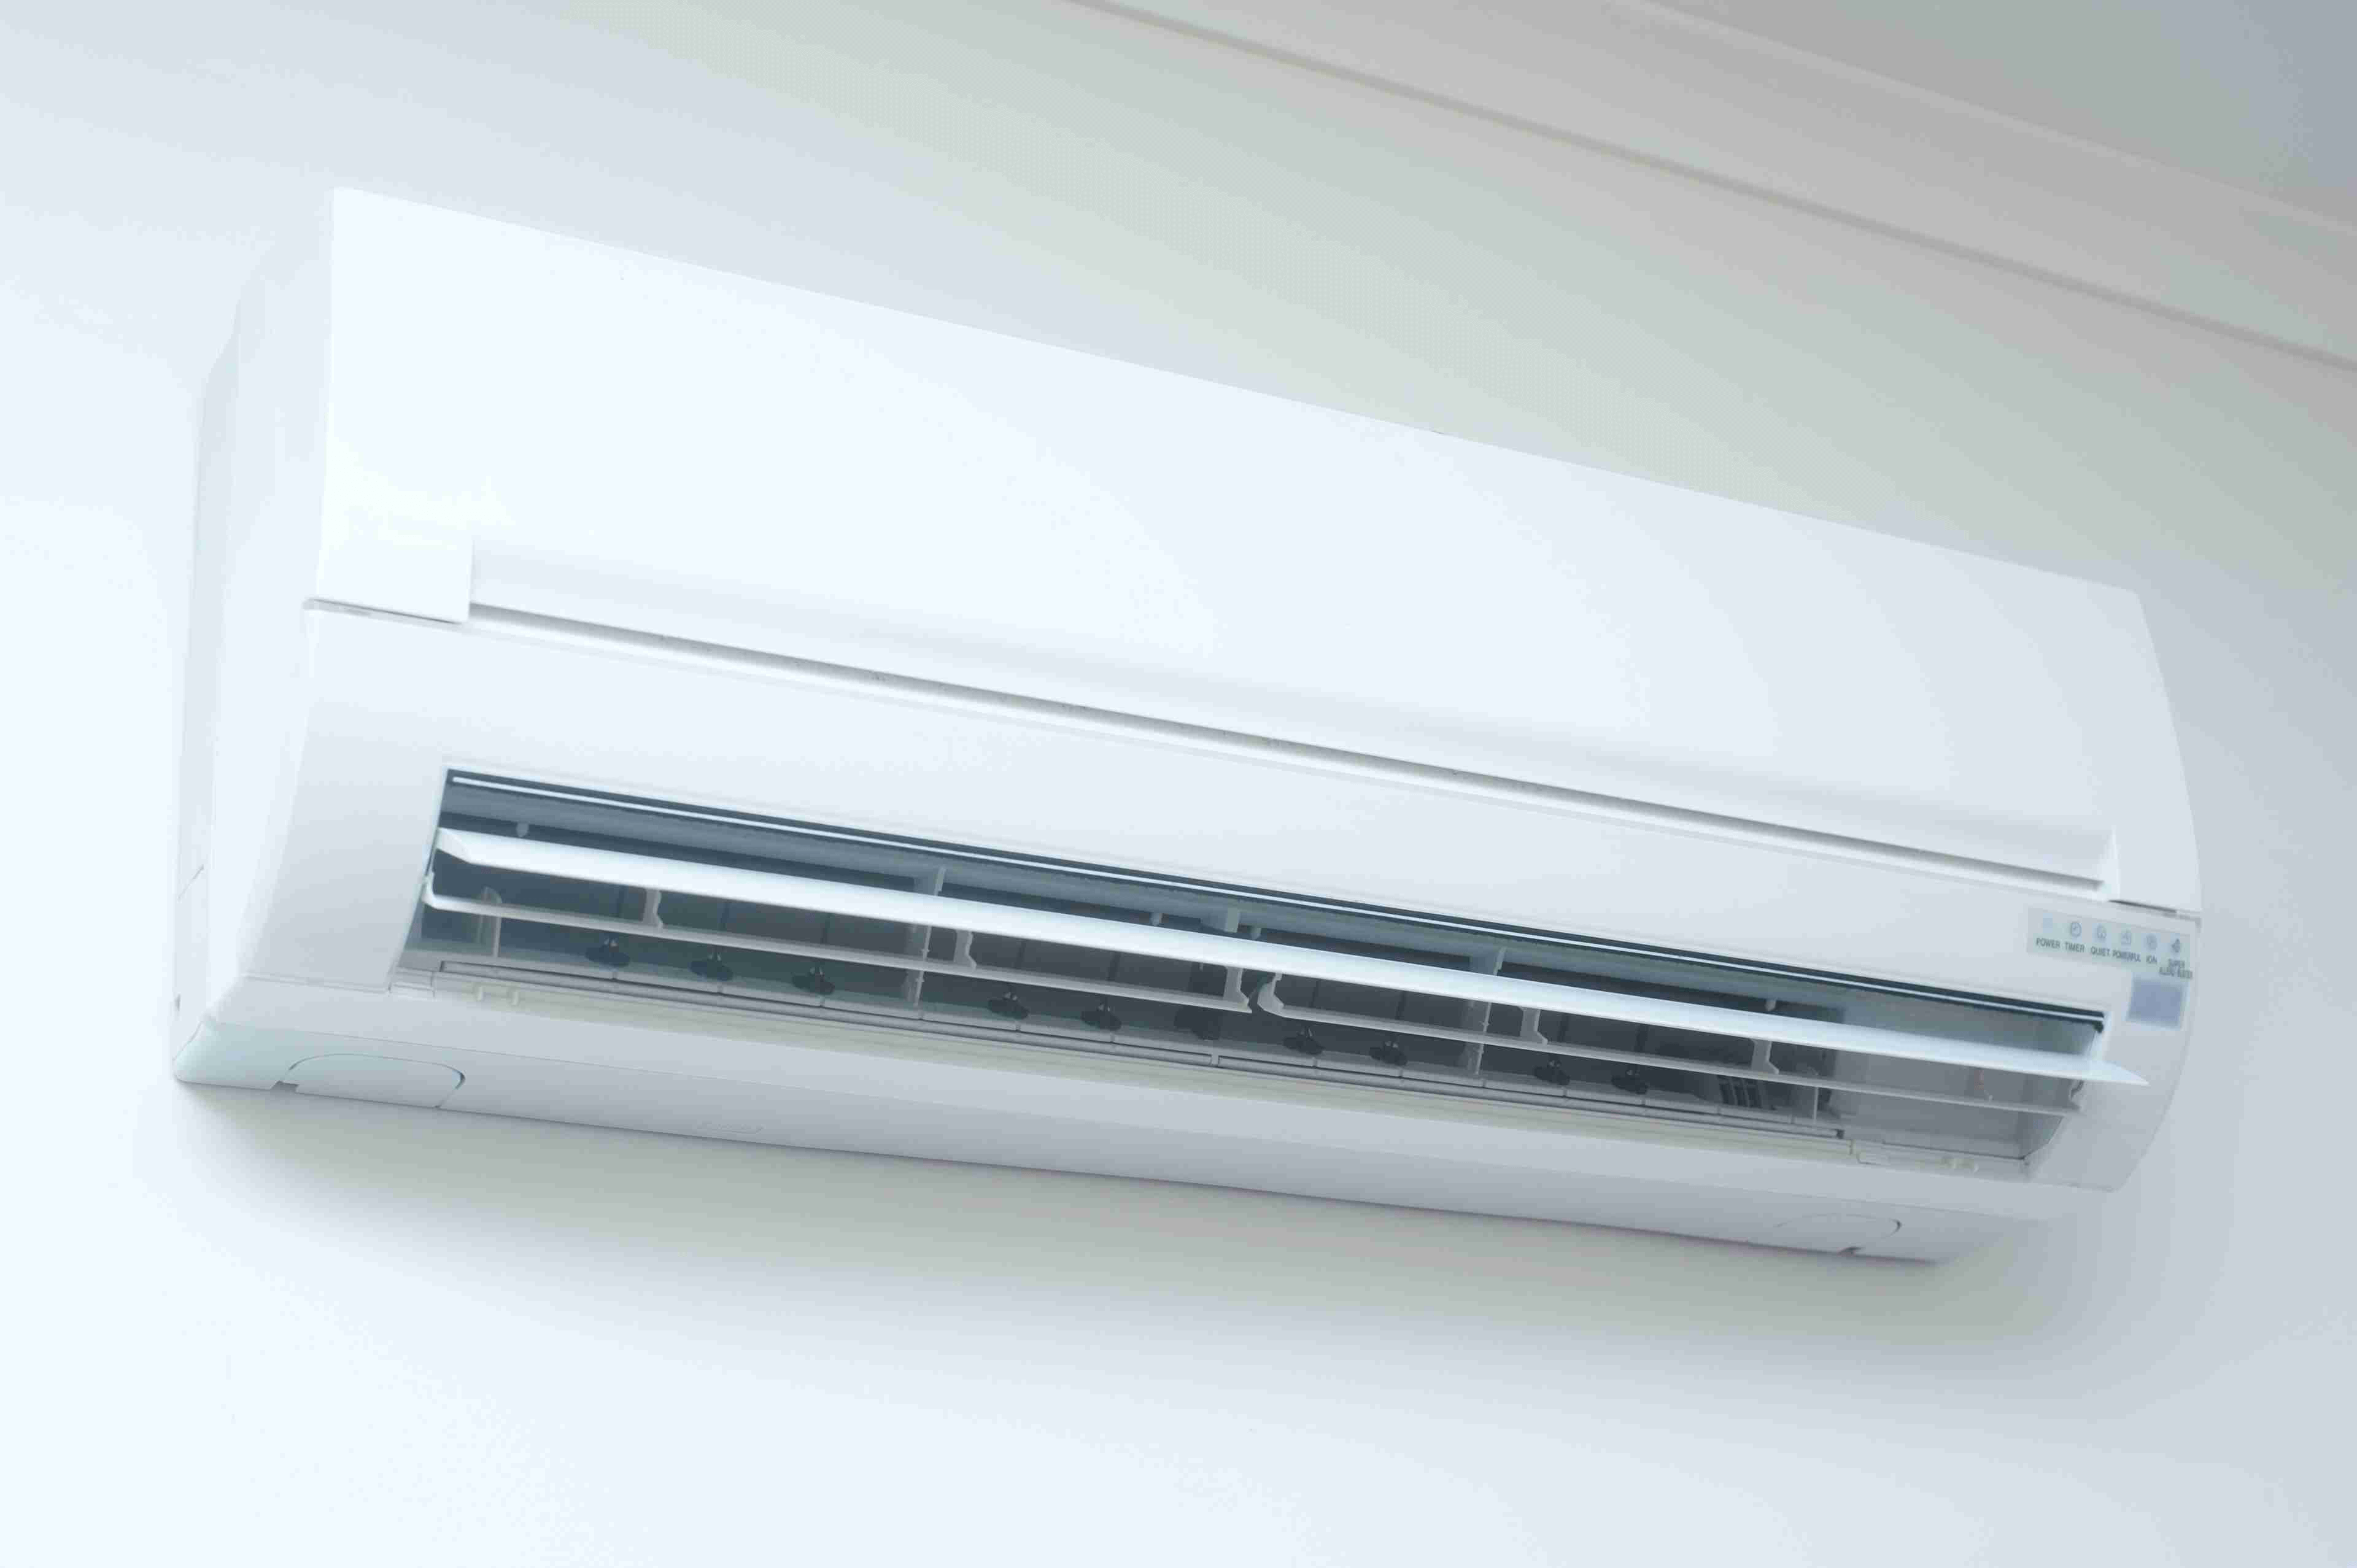 AIR CONDITIONERS Reviews and Ratings - MouthShut.com